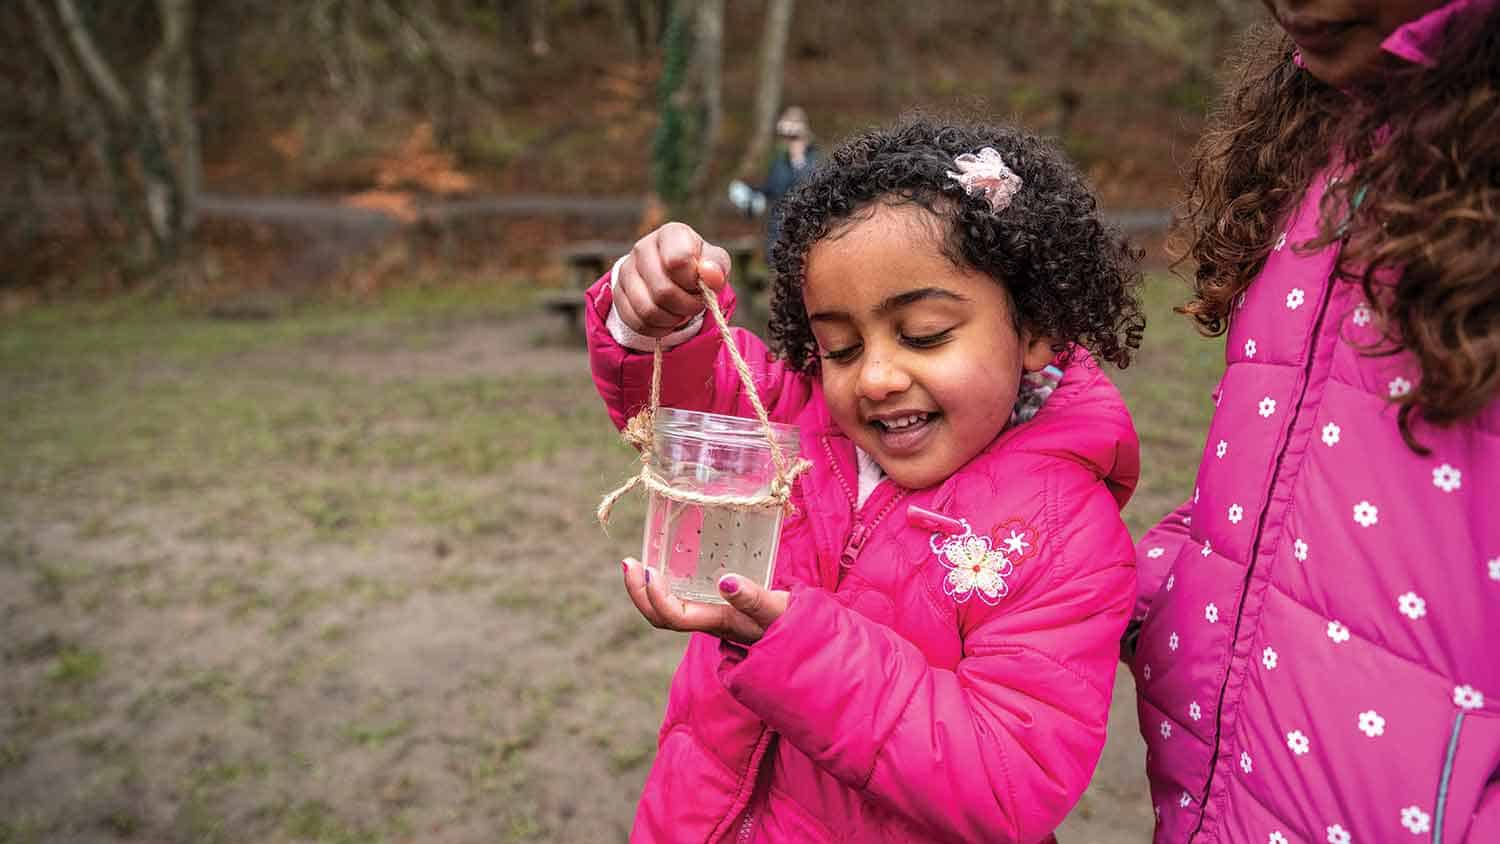 young girl marvelling at something she's caught in a glass beaker in a park.